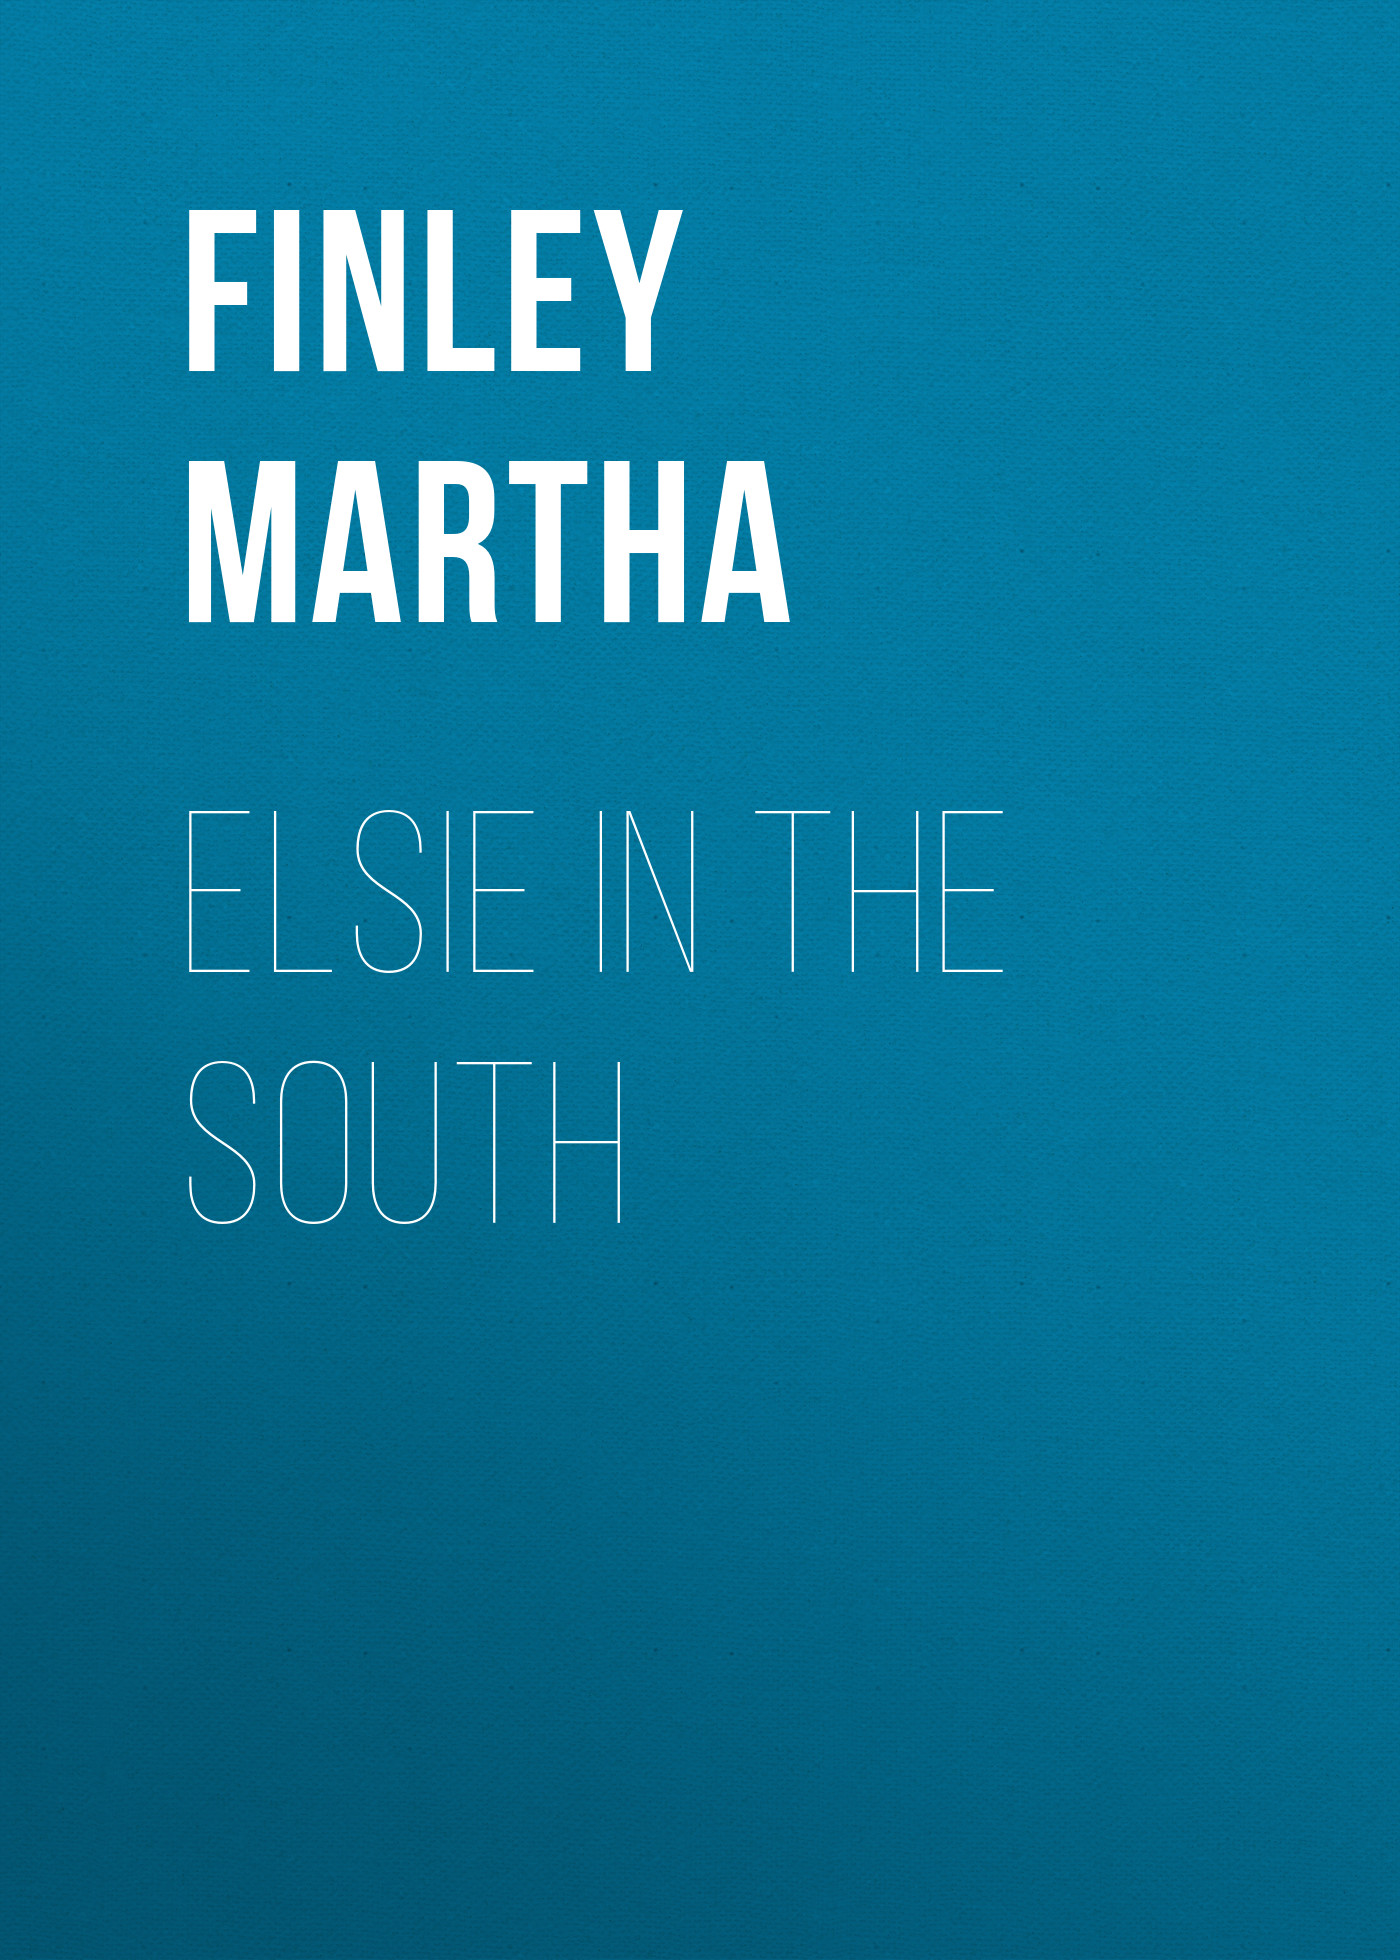 лучшая цена Finley Martha Elsie in the South